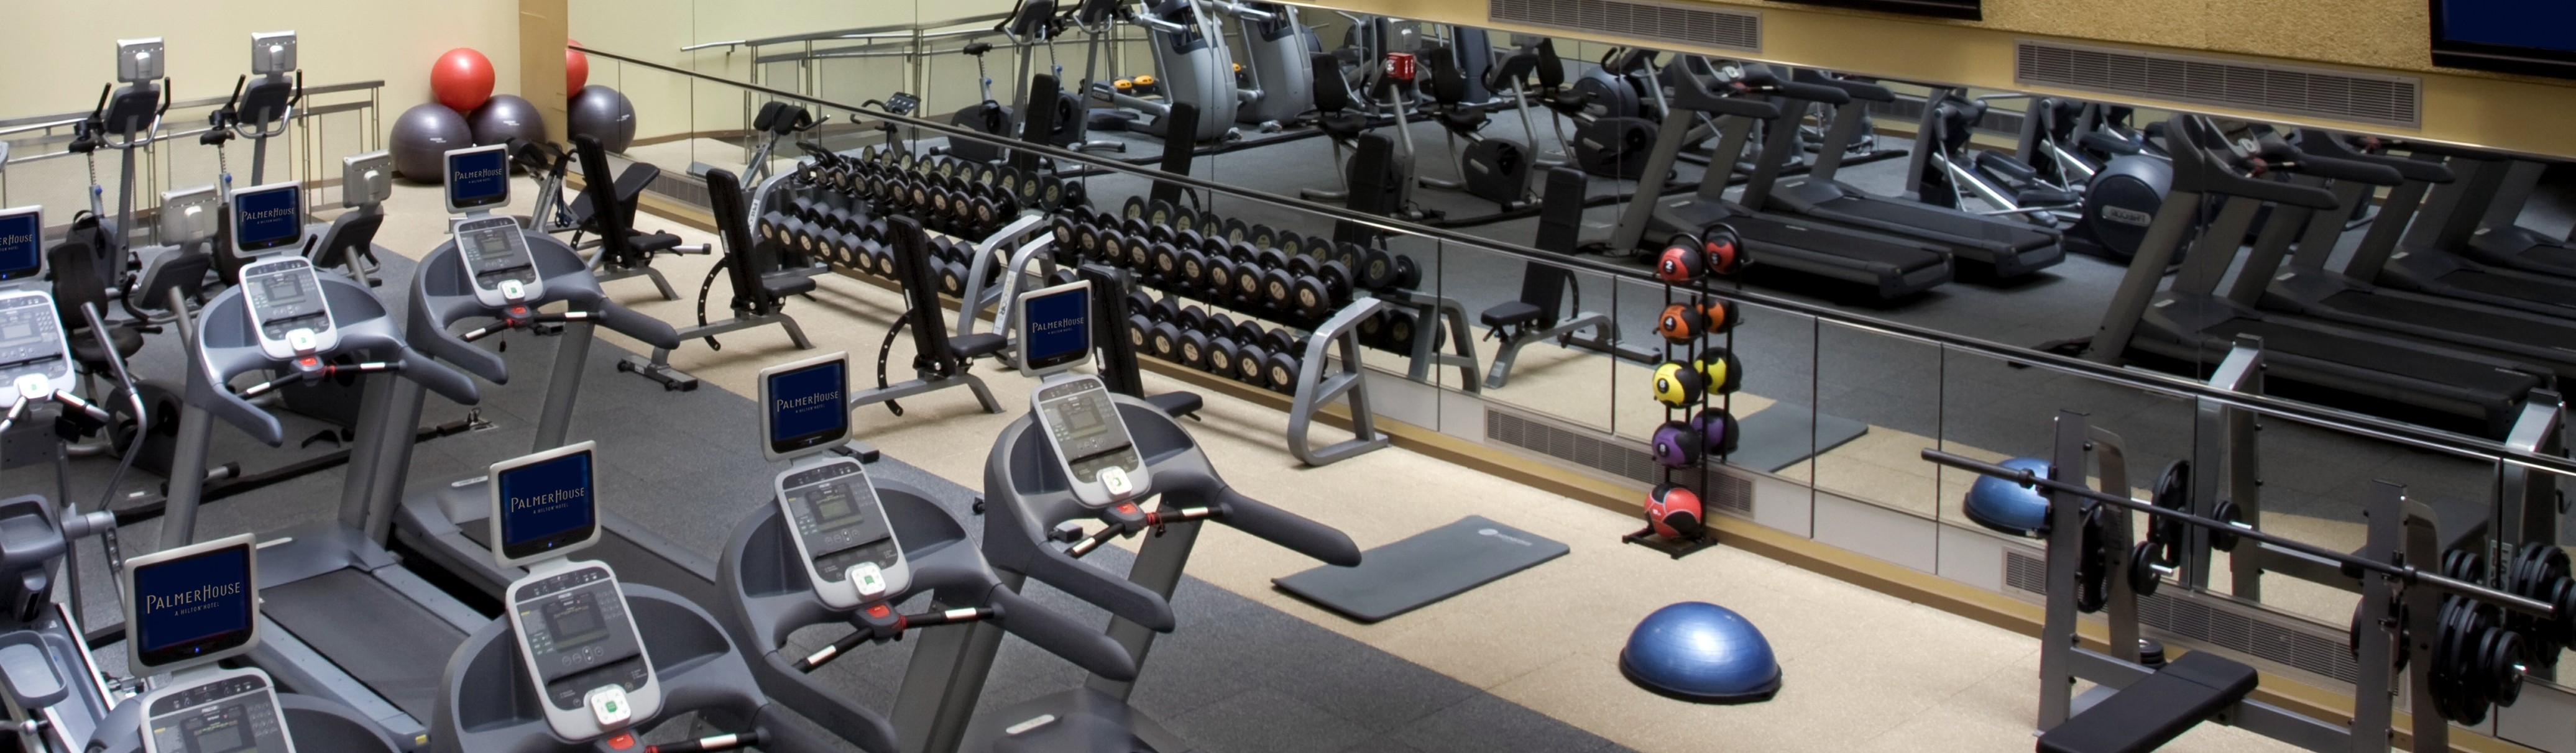 proposal for a fitness center in Just opened your business but have no budget to drive sales here are 6 proven fitness club marketing ideas that'll cost you nothing to deliver new clients.